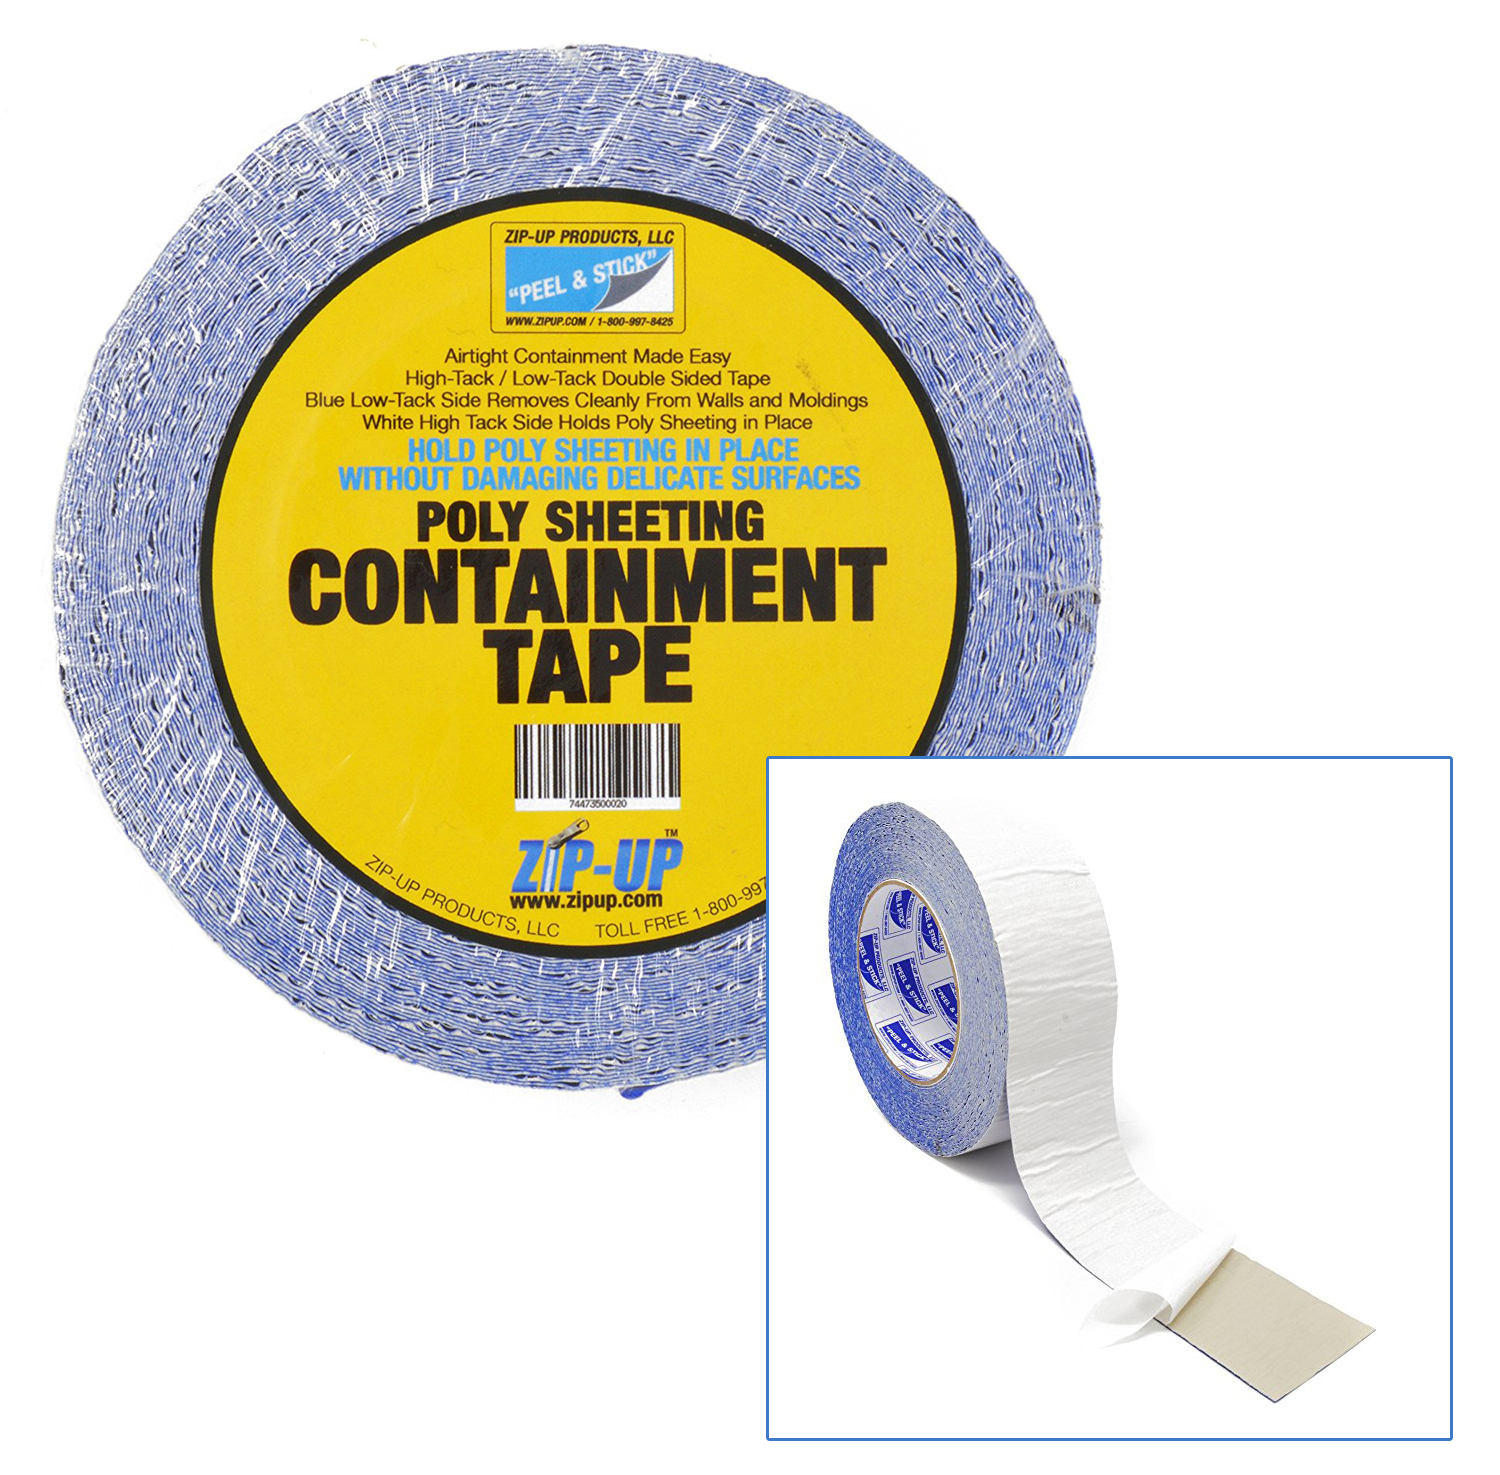 Zip Up Double Sided Poly Sheeting Containment Tape 2 X 60 Roll 26 99